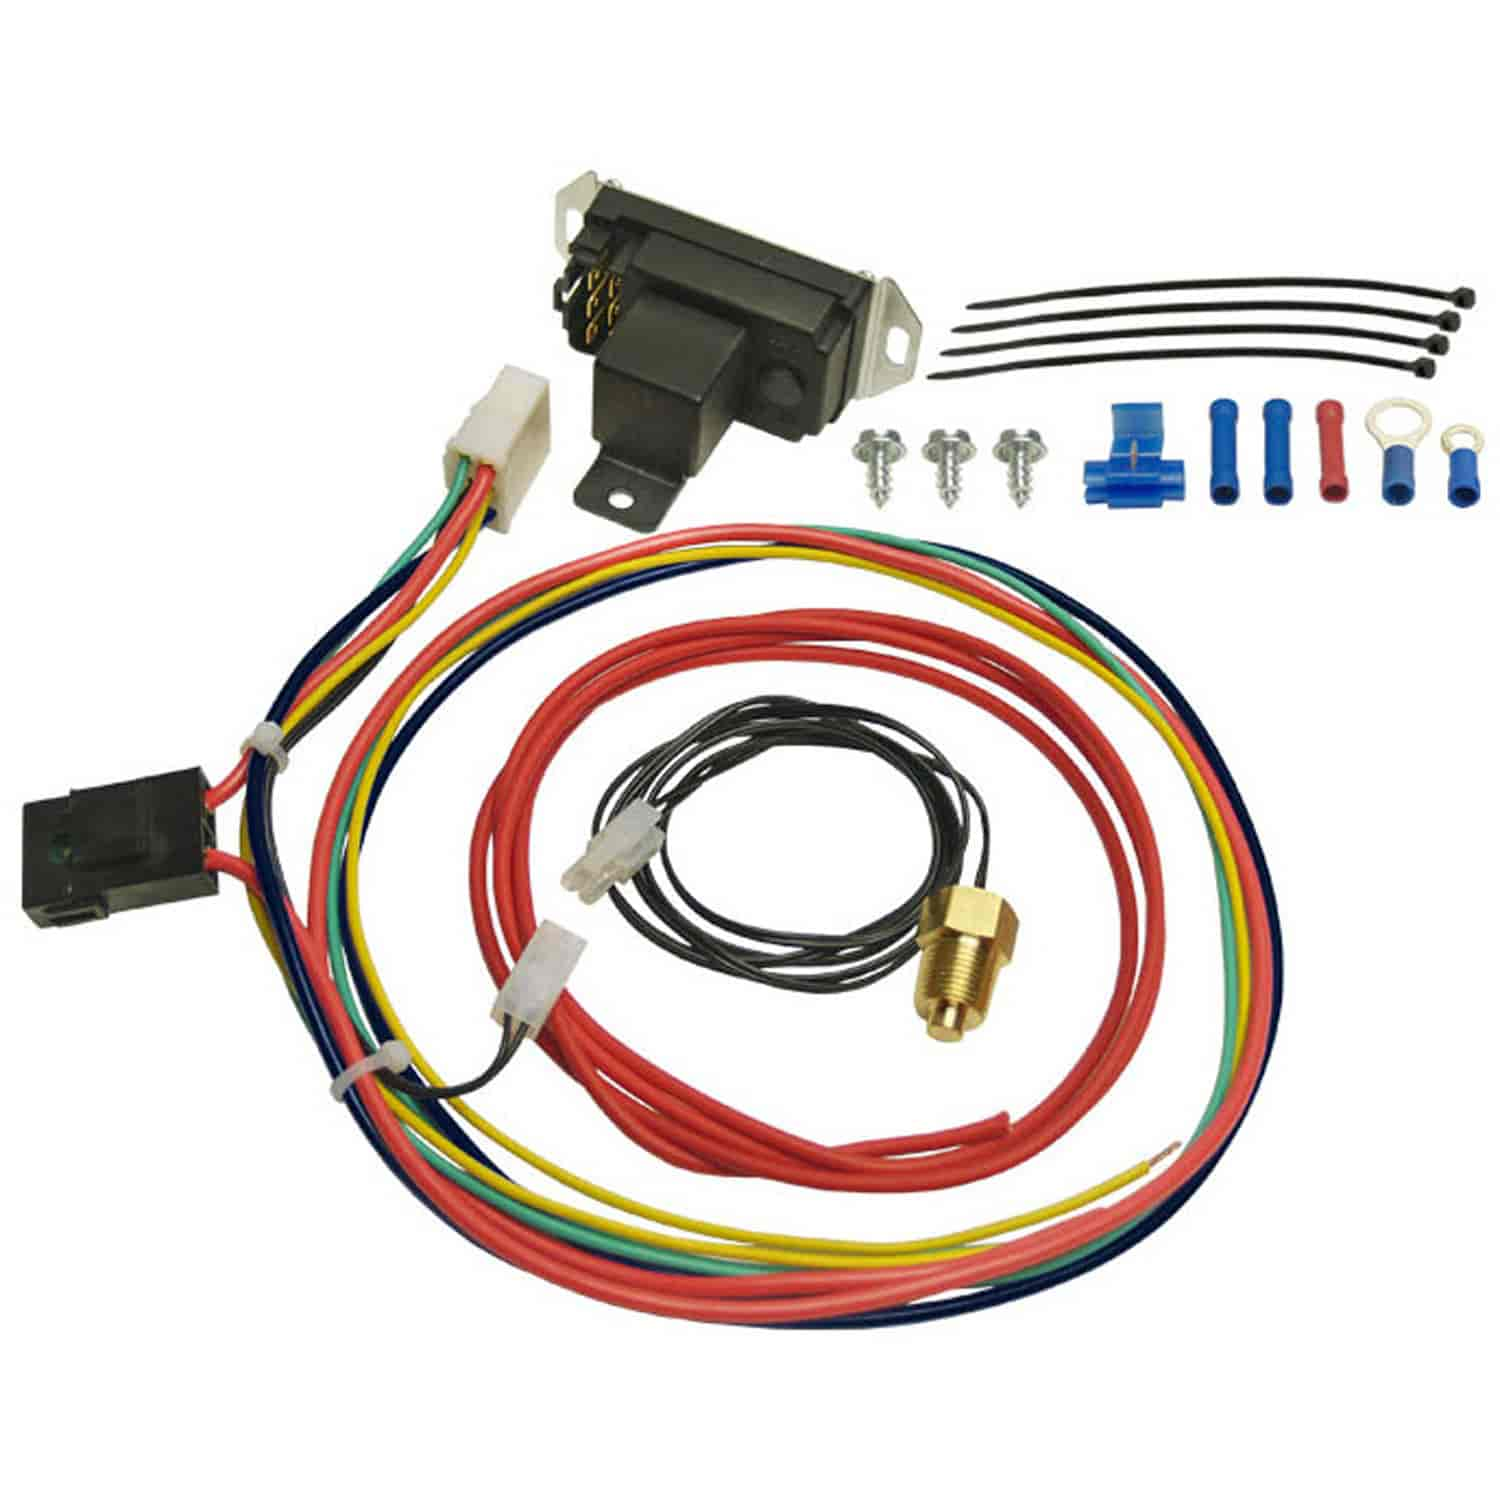 259 16749_1 jegs hot rod wiring harness wiring diagrams VW Wiring Harness Kits at creativeand.co